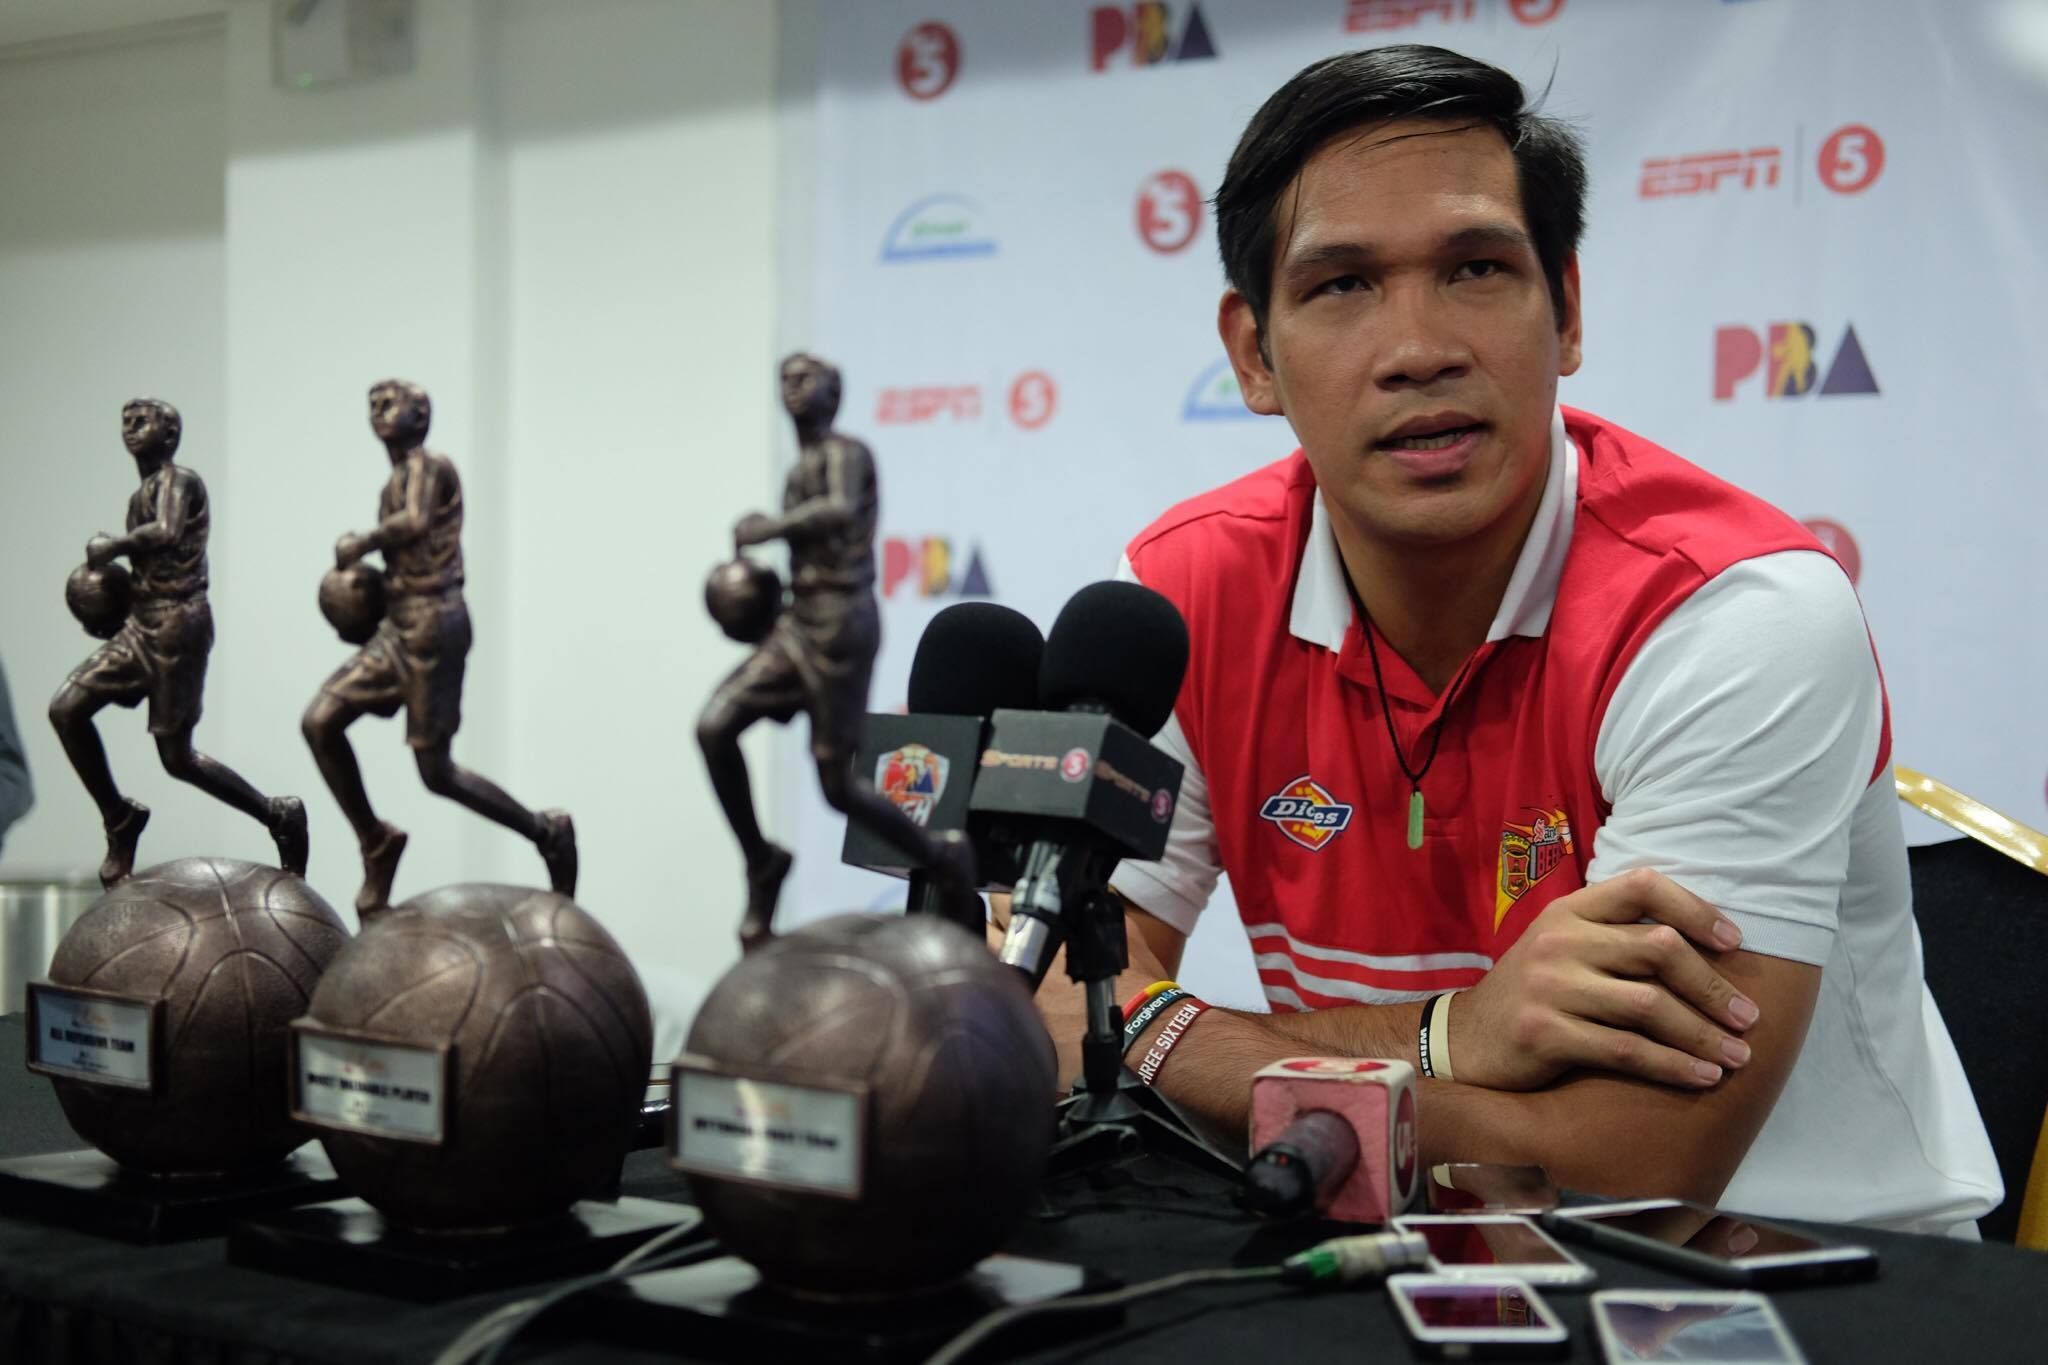 San Miguel Beer's June Mar Fajardo with his Mythical First Team, Defensive Team and Most Valuable Player hardwares he received during the 2017 PBA Leo Awards at the Big Dome, Friday night   Philstar.com/Denison Dalupang